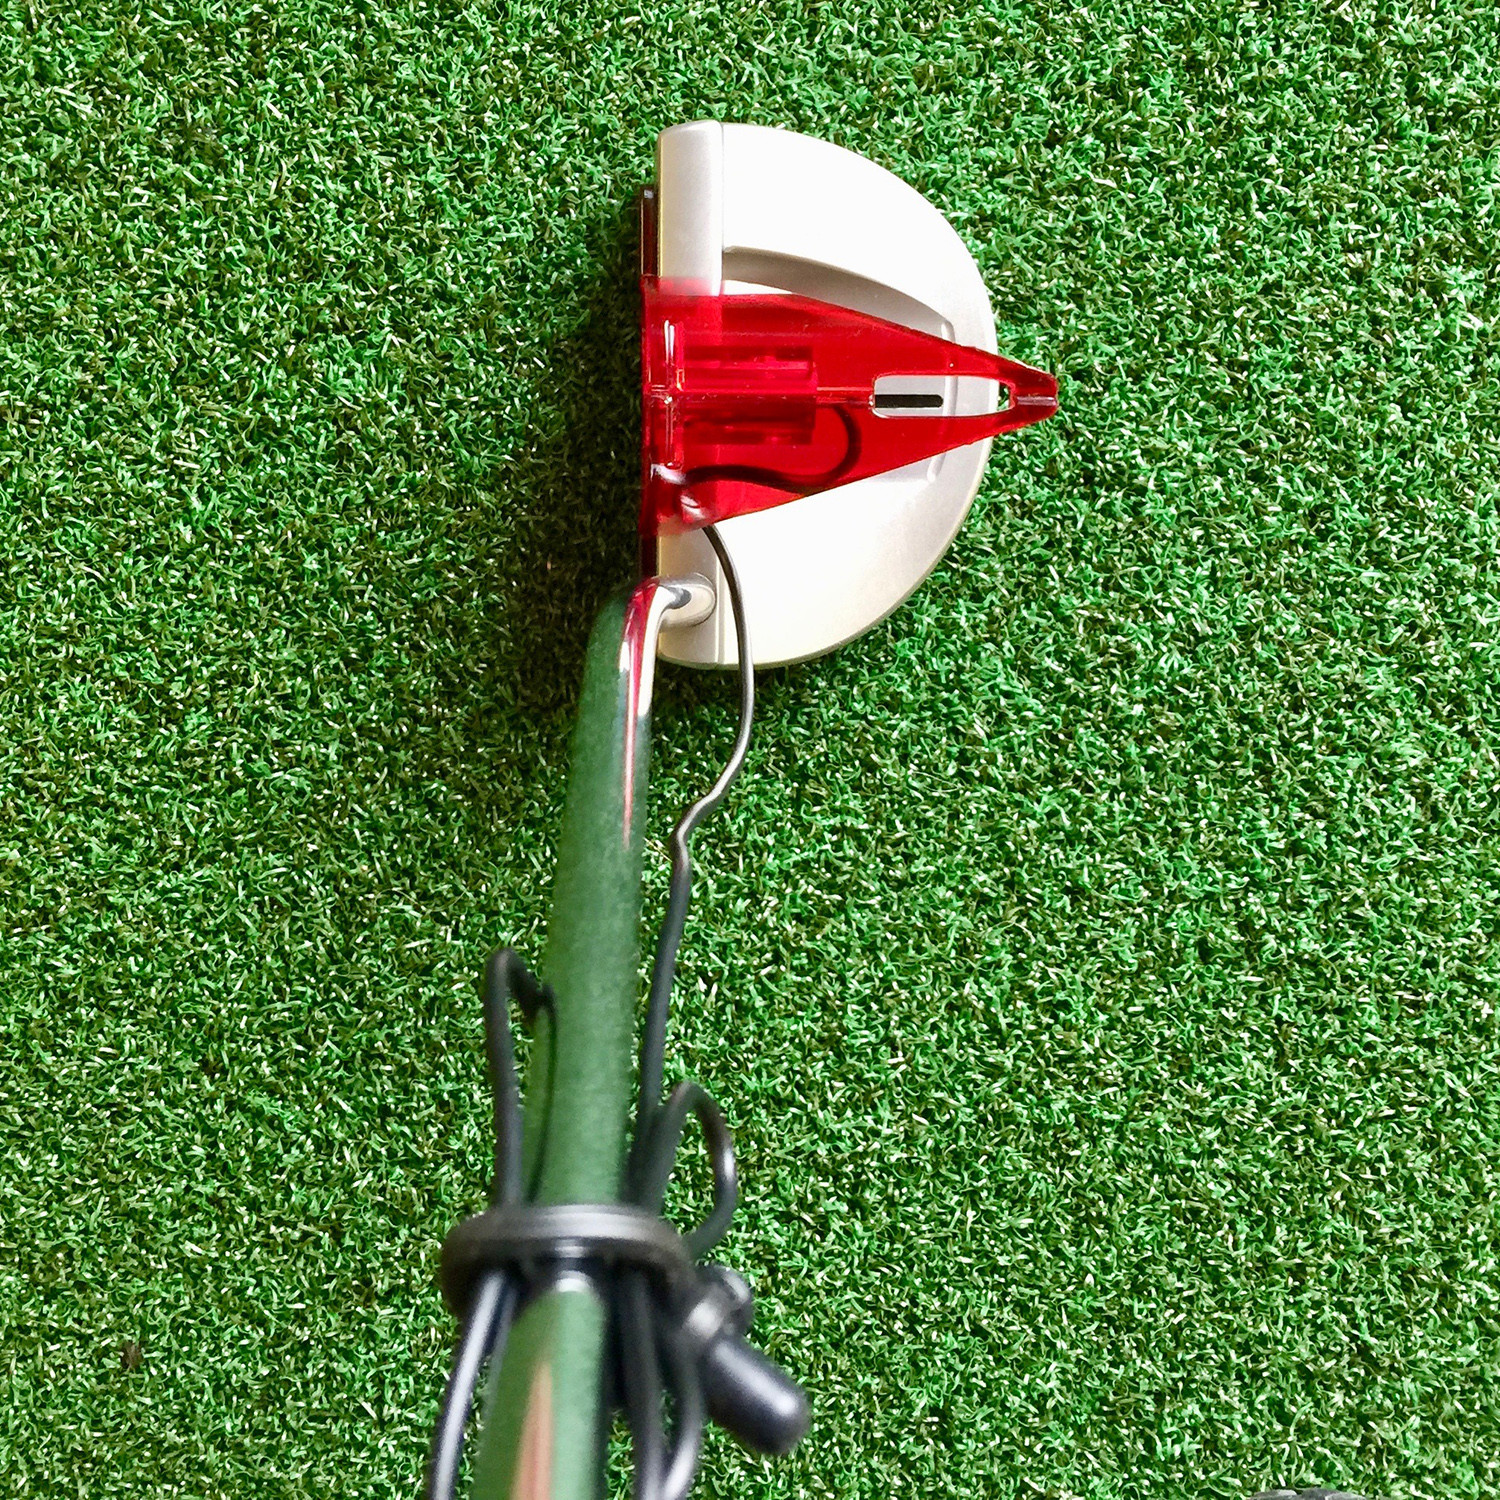 Pin Point Putting Aim Laser Eyeline Golf Touch Of Modern